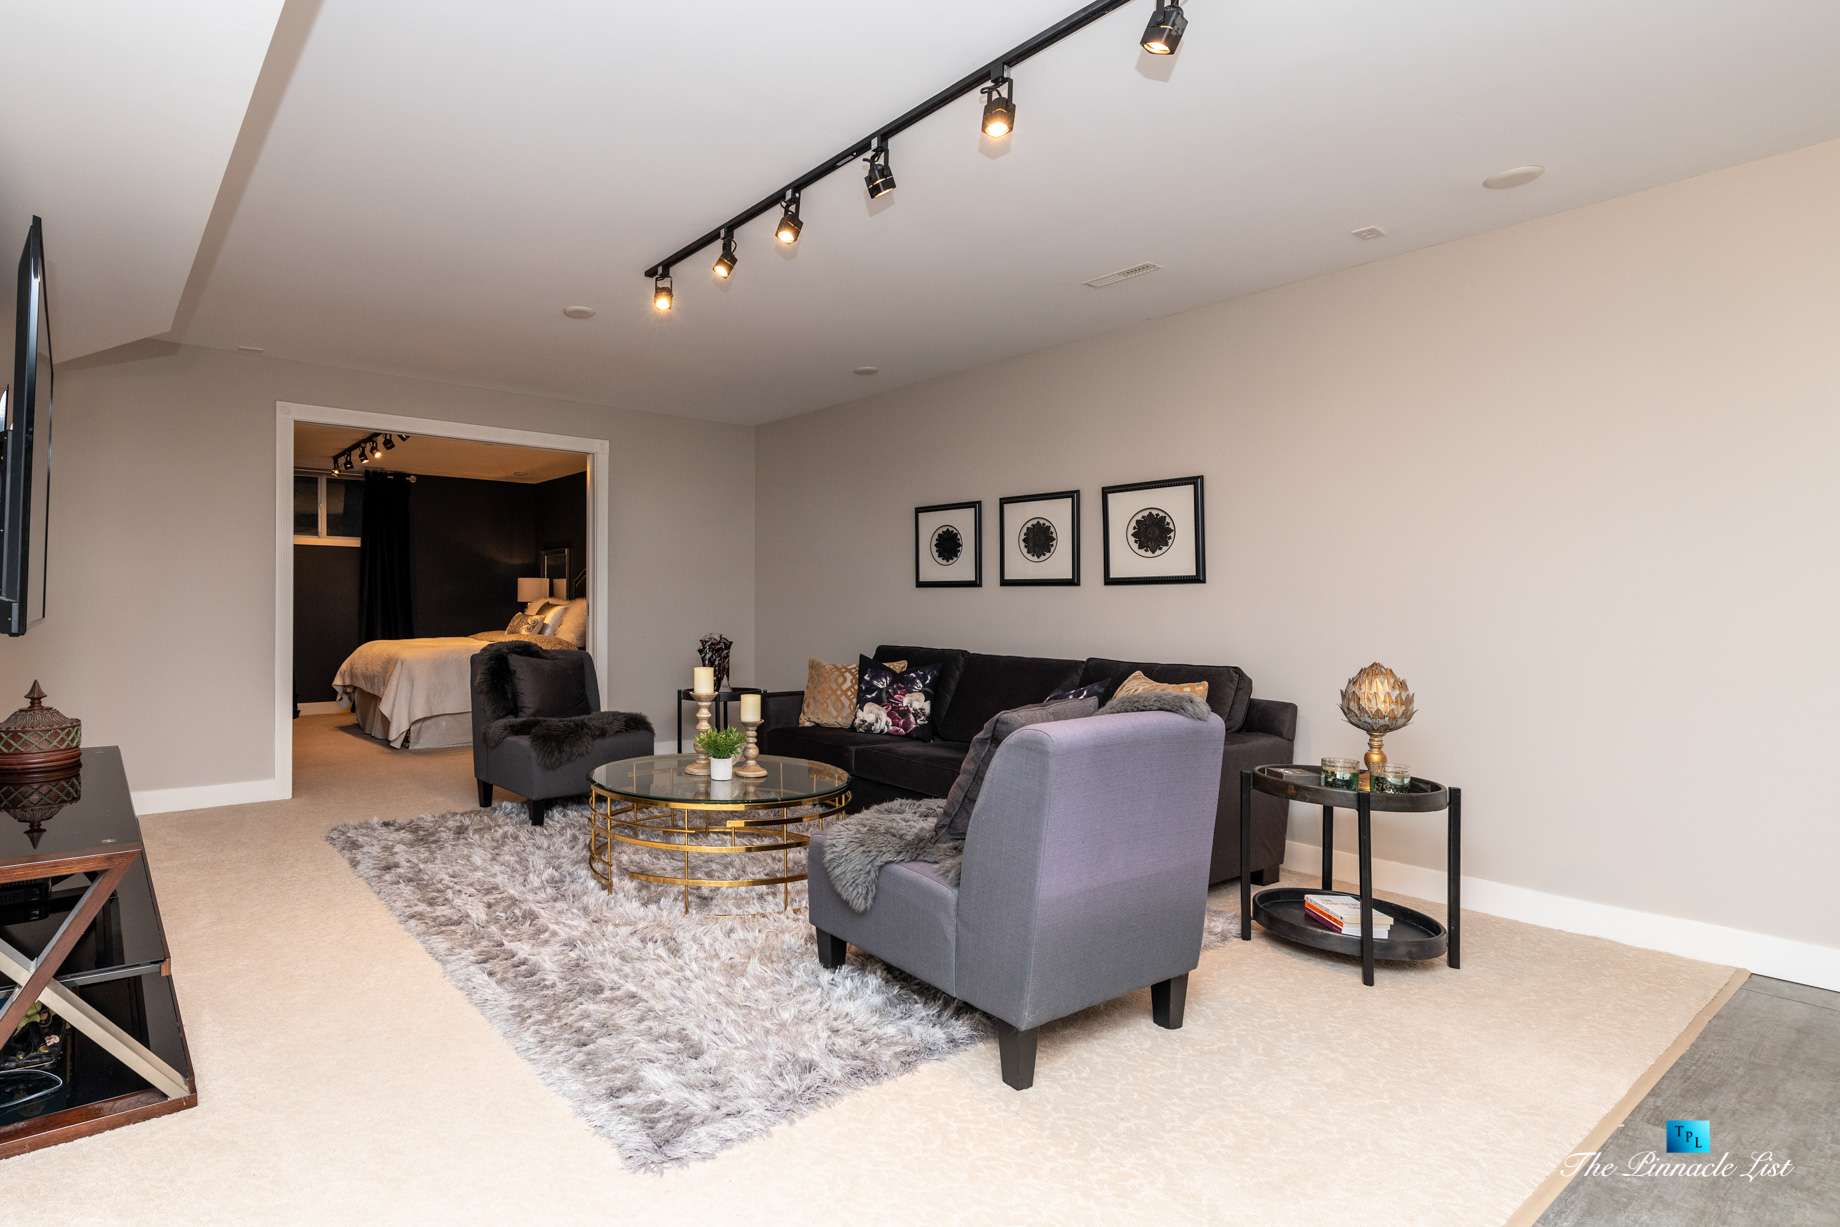 2366 Sunnyside Rd, Anmore, BC, Canada – Basment Family Room